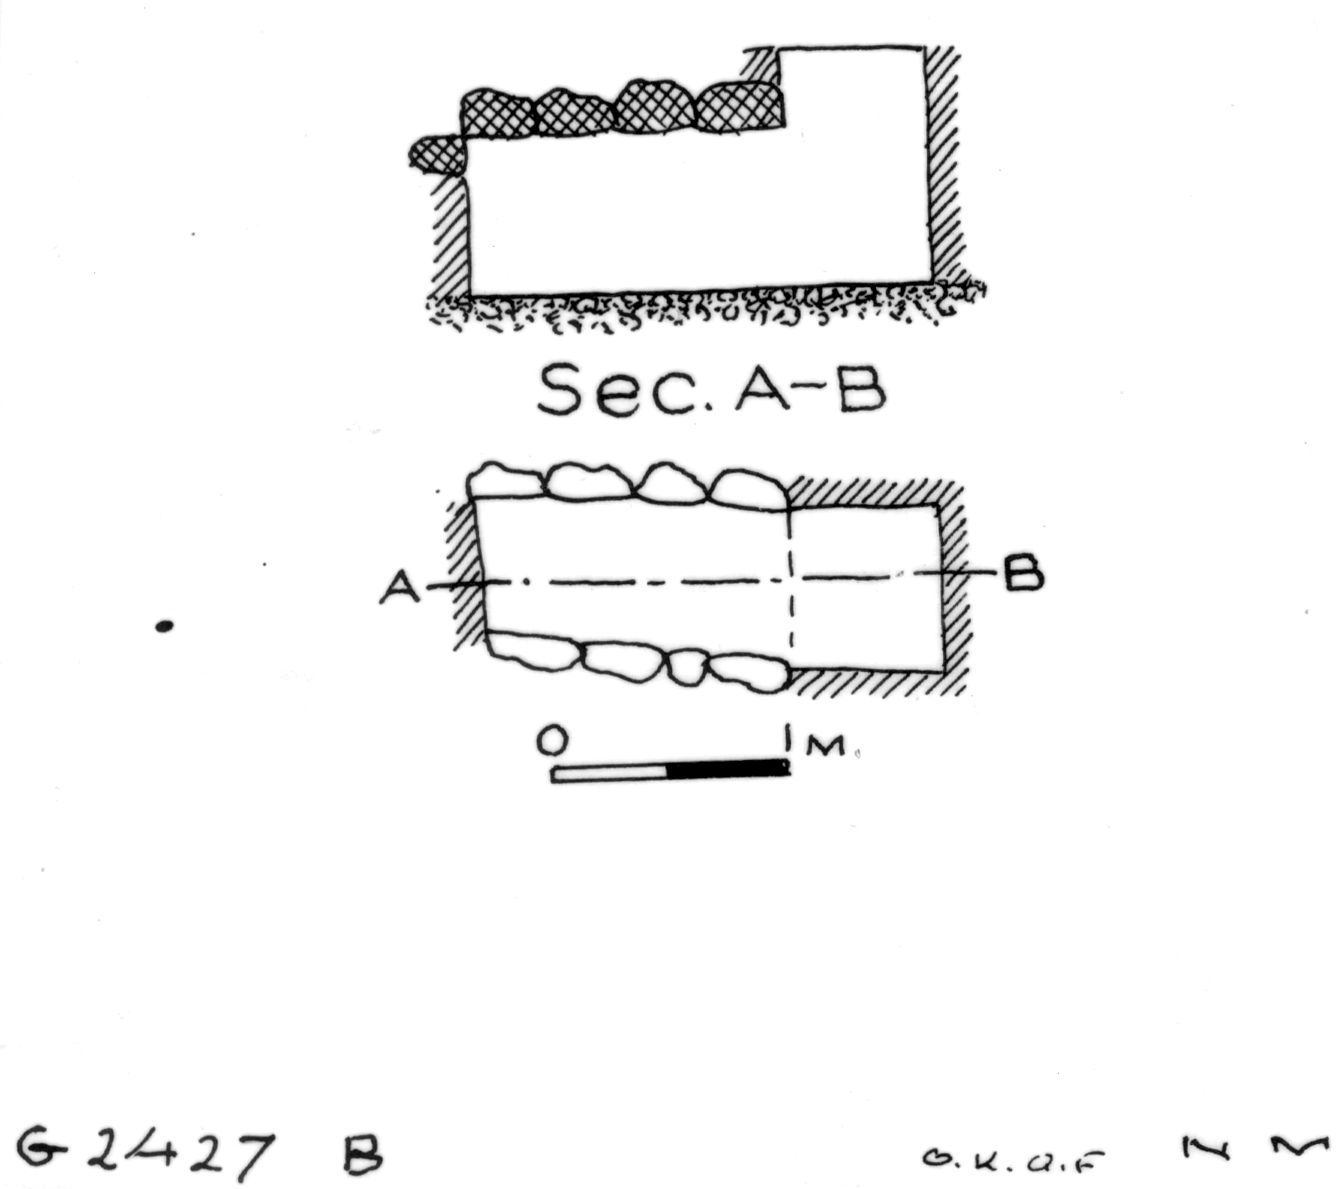 Maps and plans: G 2427, Shaft B